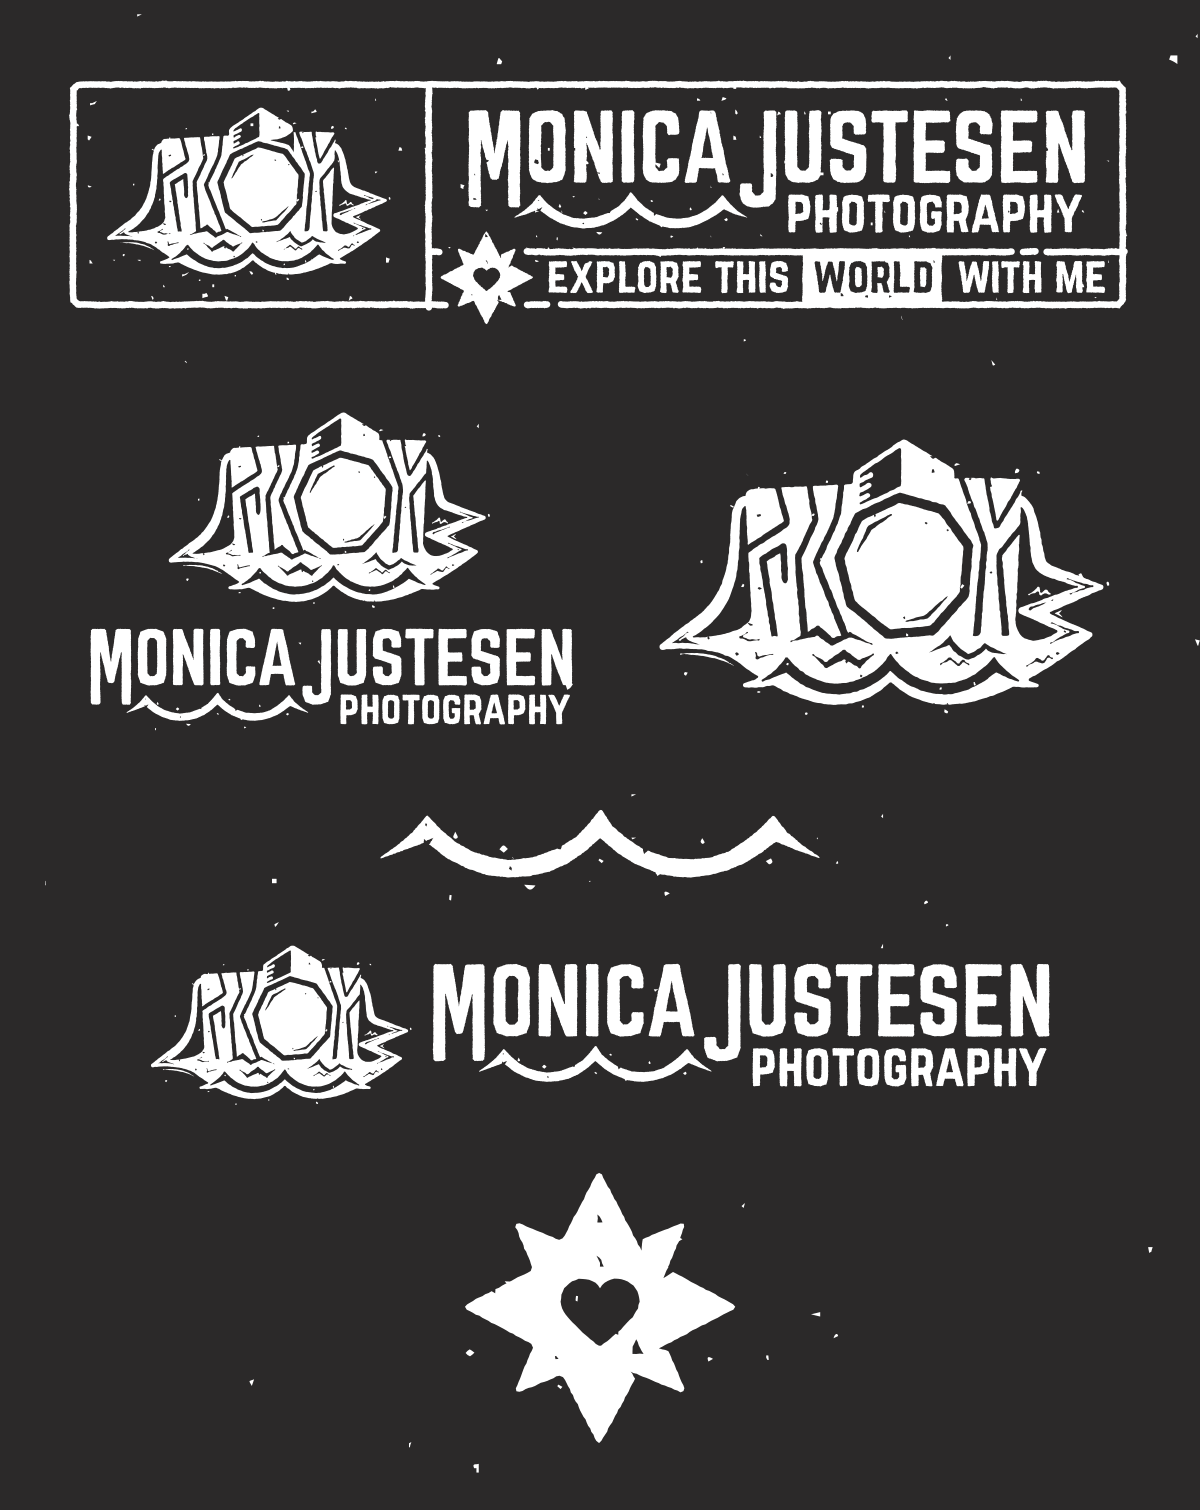 Photography logo in use on portrait photo